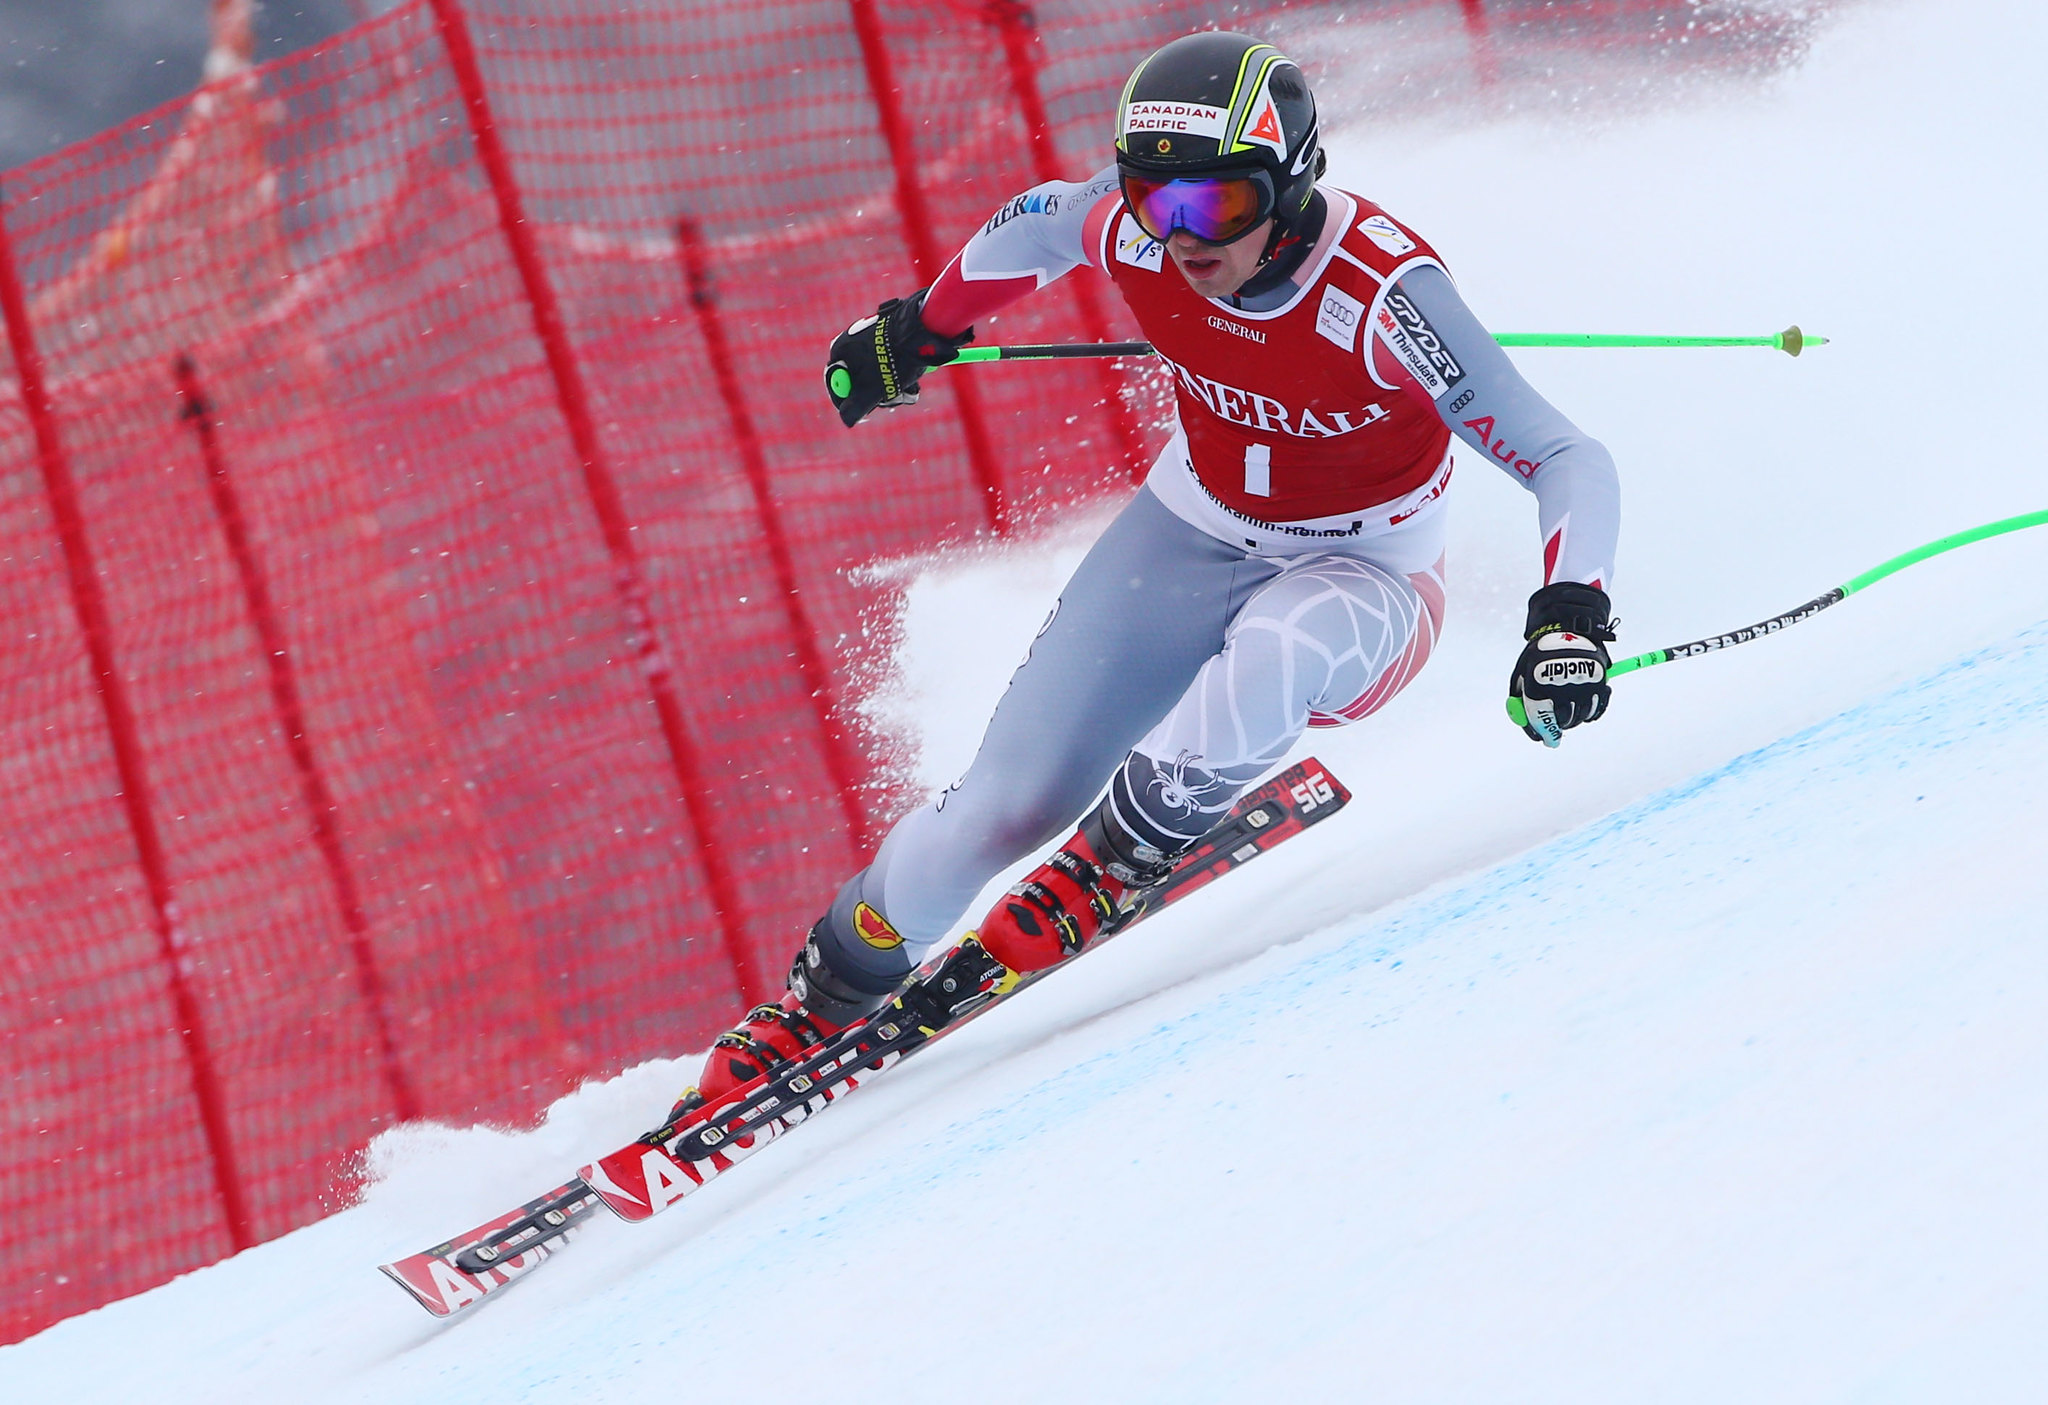 John Kucera keeps his focus as he battles the super-G track in Kitzbühel.